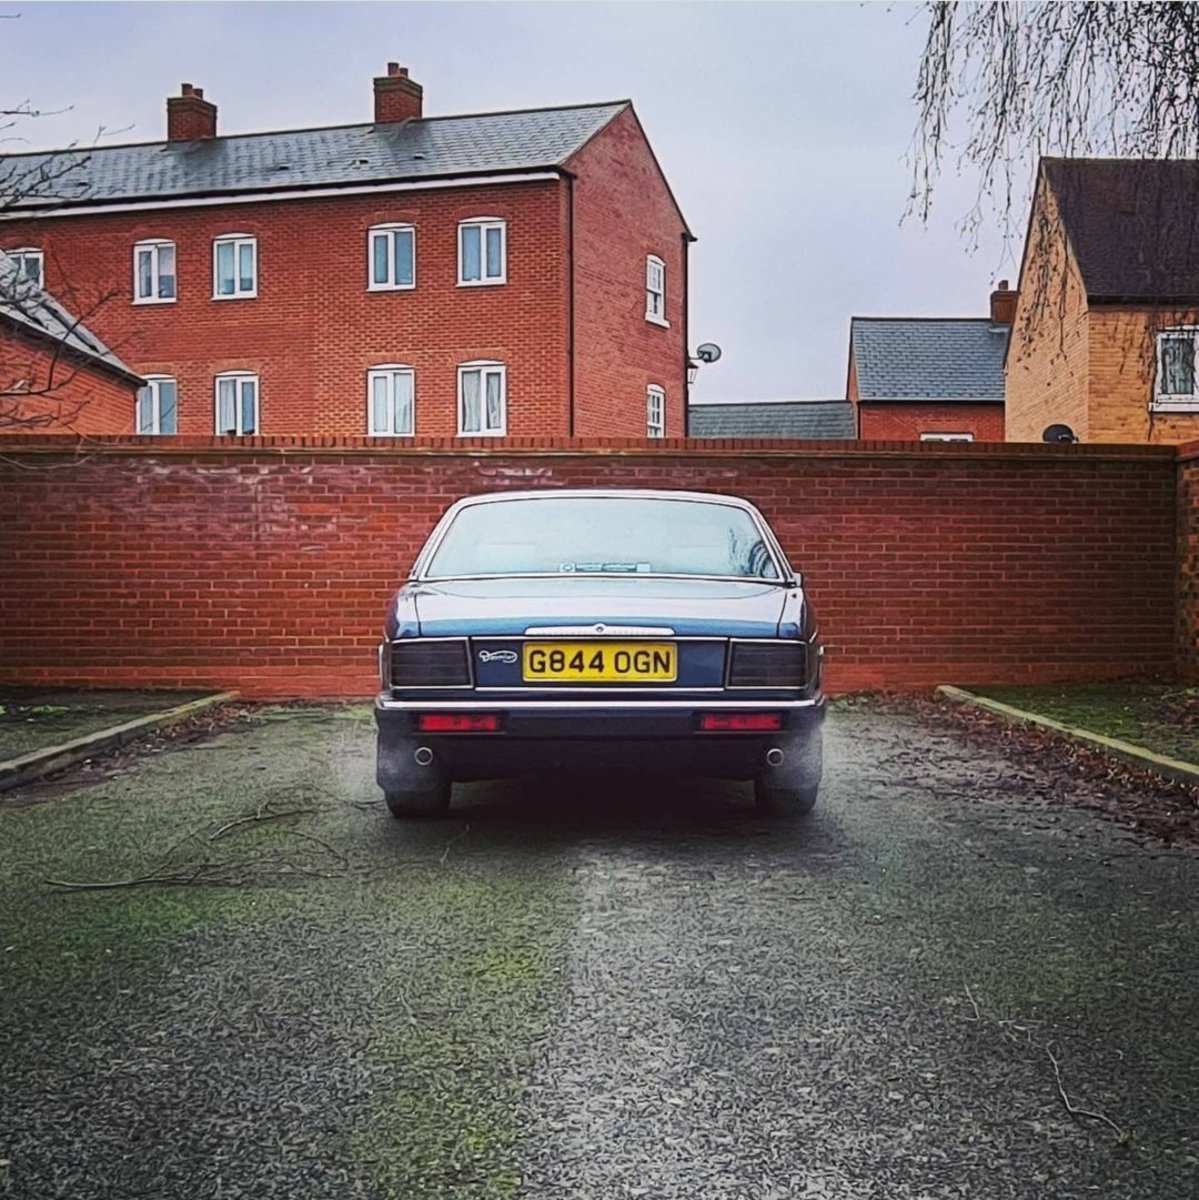 1990 *MINT*       Jaguar daimler xj40 - 4.0 - rust free For Sale (picture 4 of 5)